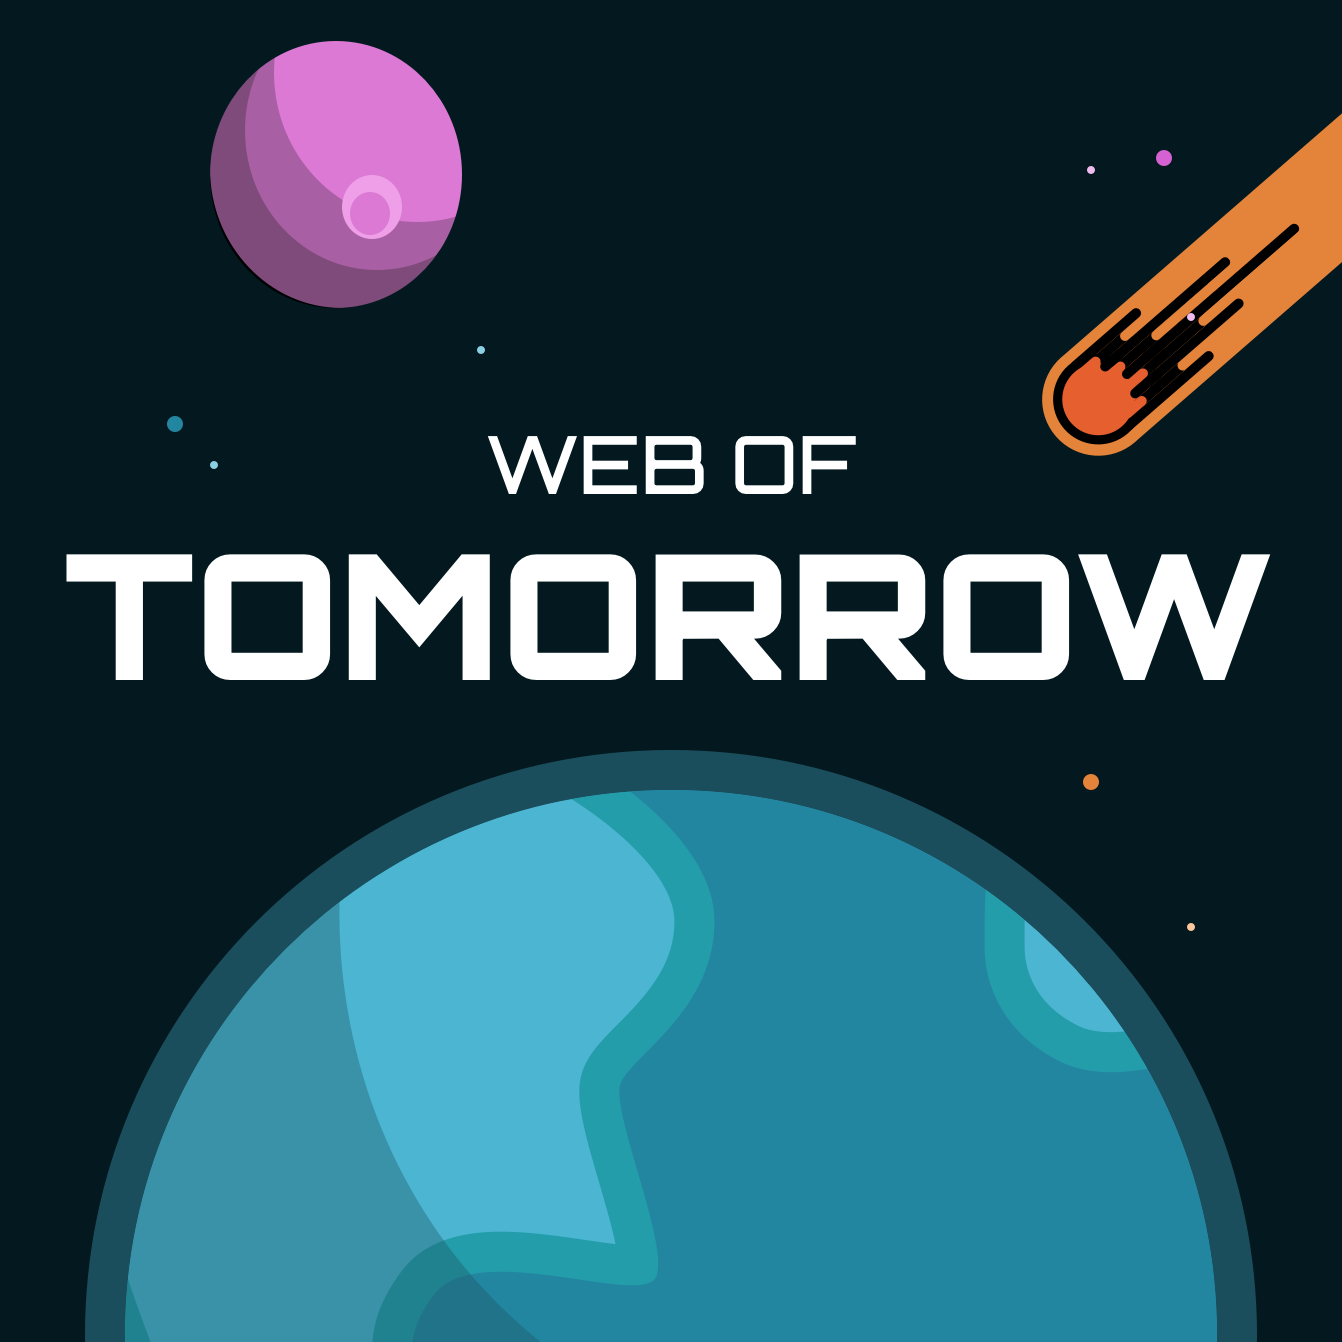 Web of Tomorrow logo